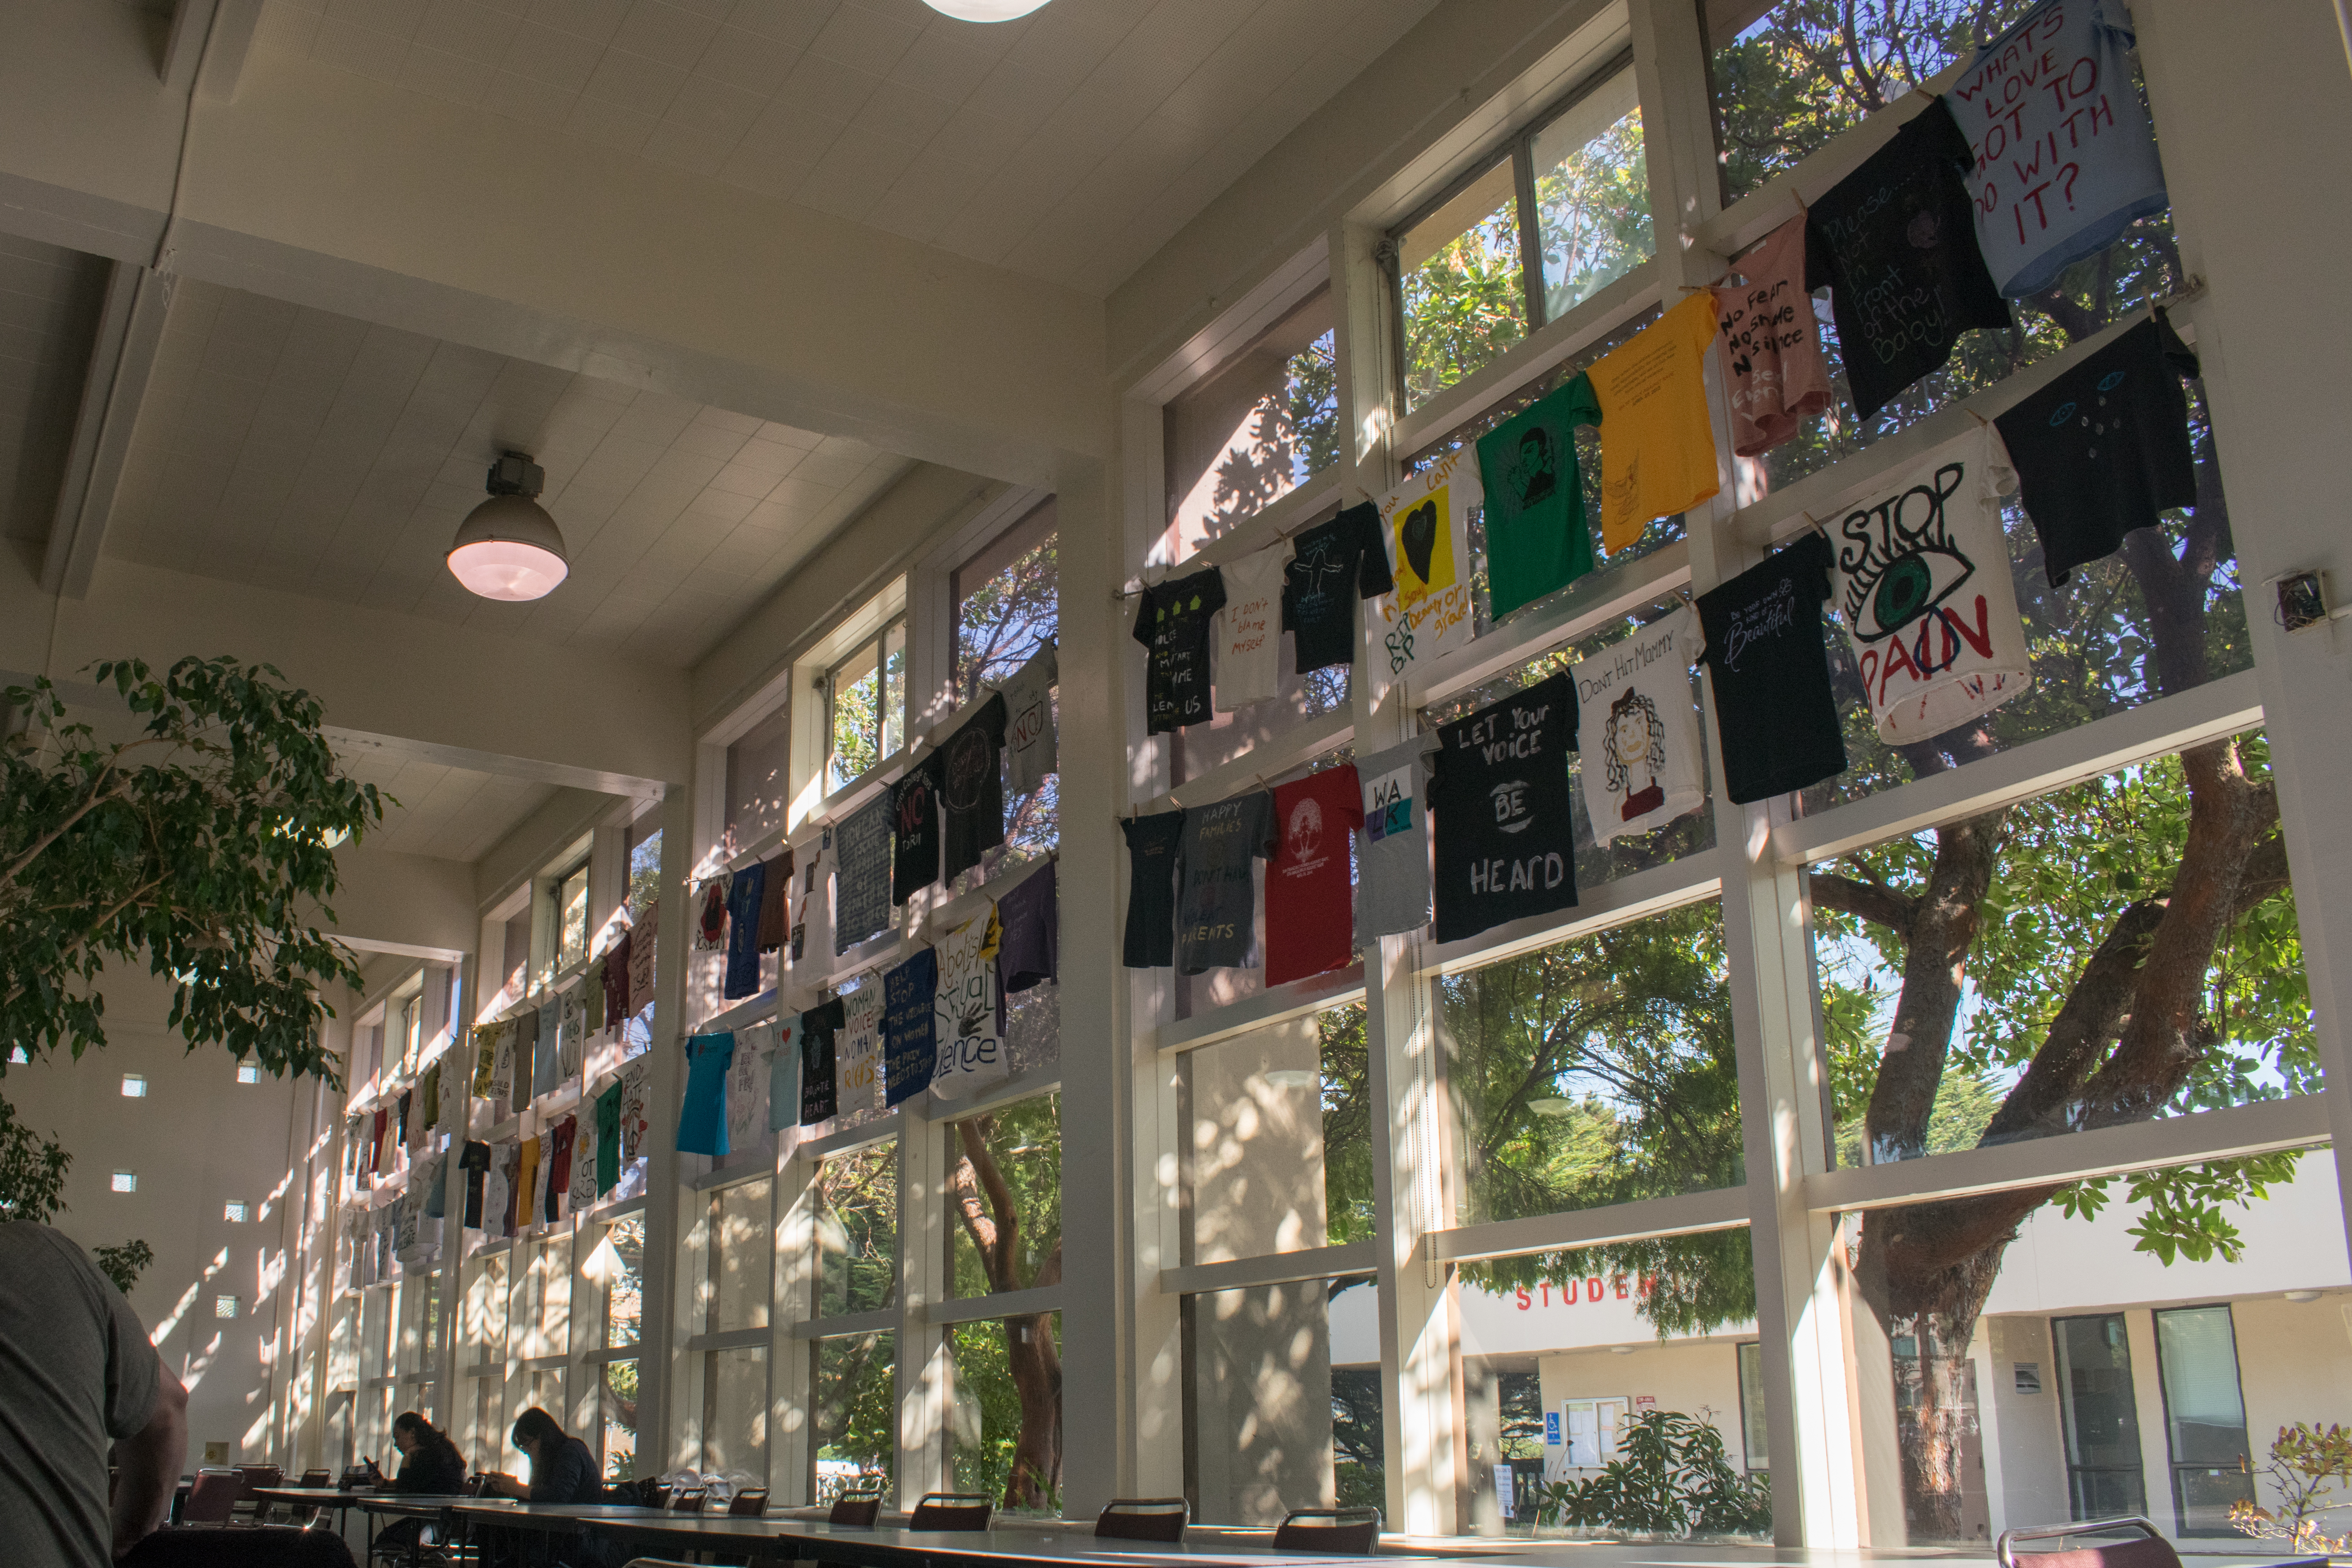 The City College Cafeteria is decorated with 67 shirts advocating against domestic violence. Photo by Sarah Berjan/ the Guardsman.